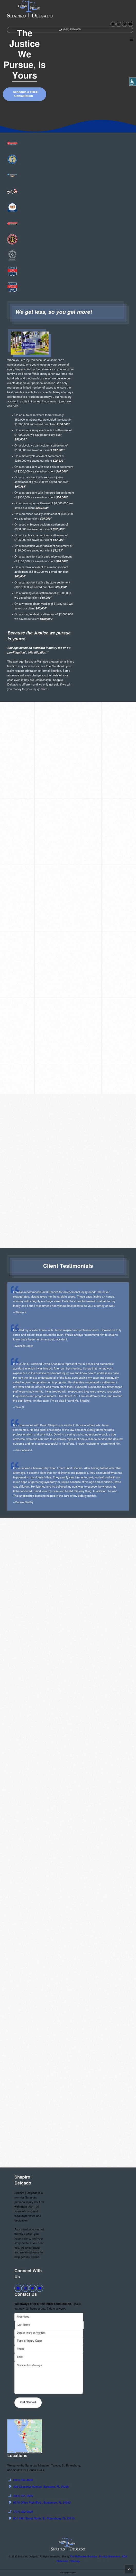 Shapiro, Goldman, Babboni & Walsh - Lakeland FL Lawyers